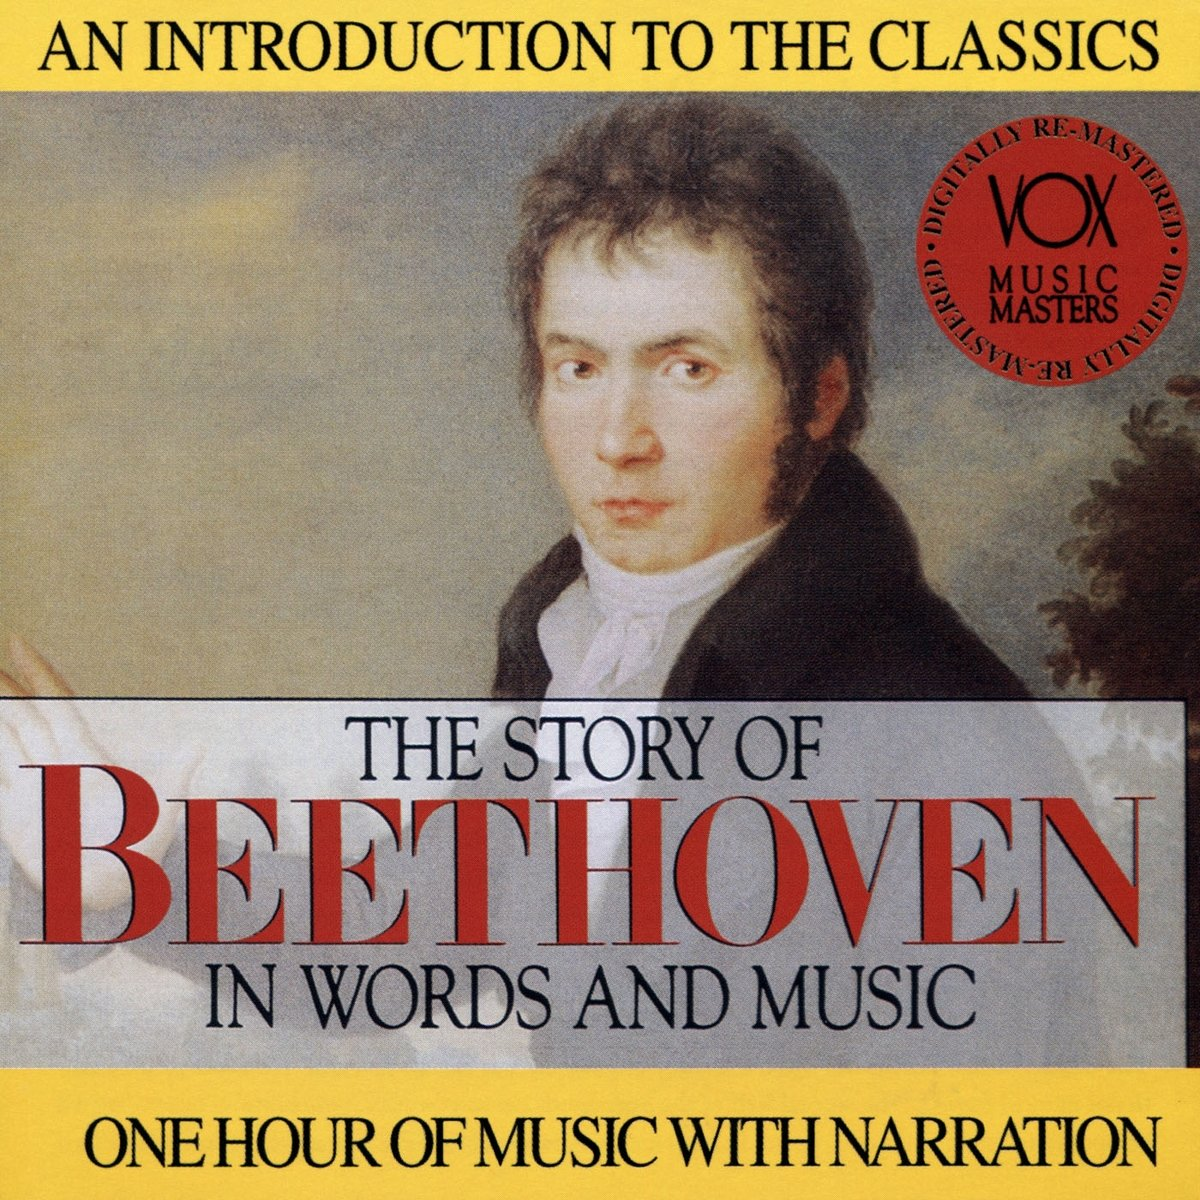 The Story of Beethoven in Words and Music by Vox